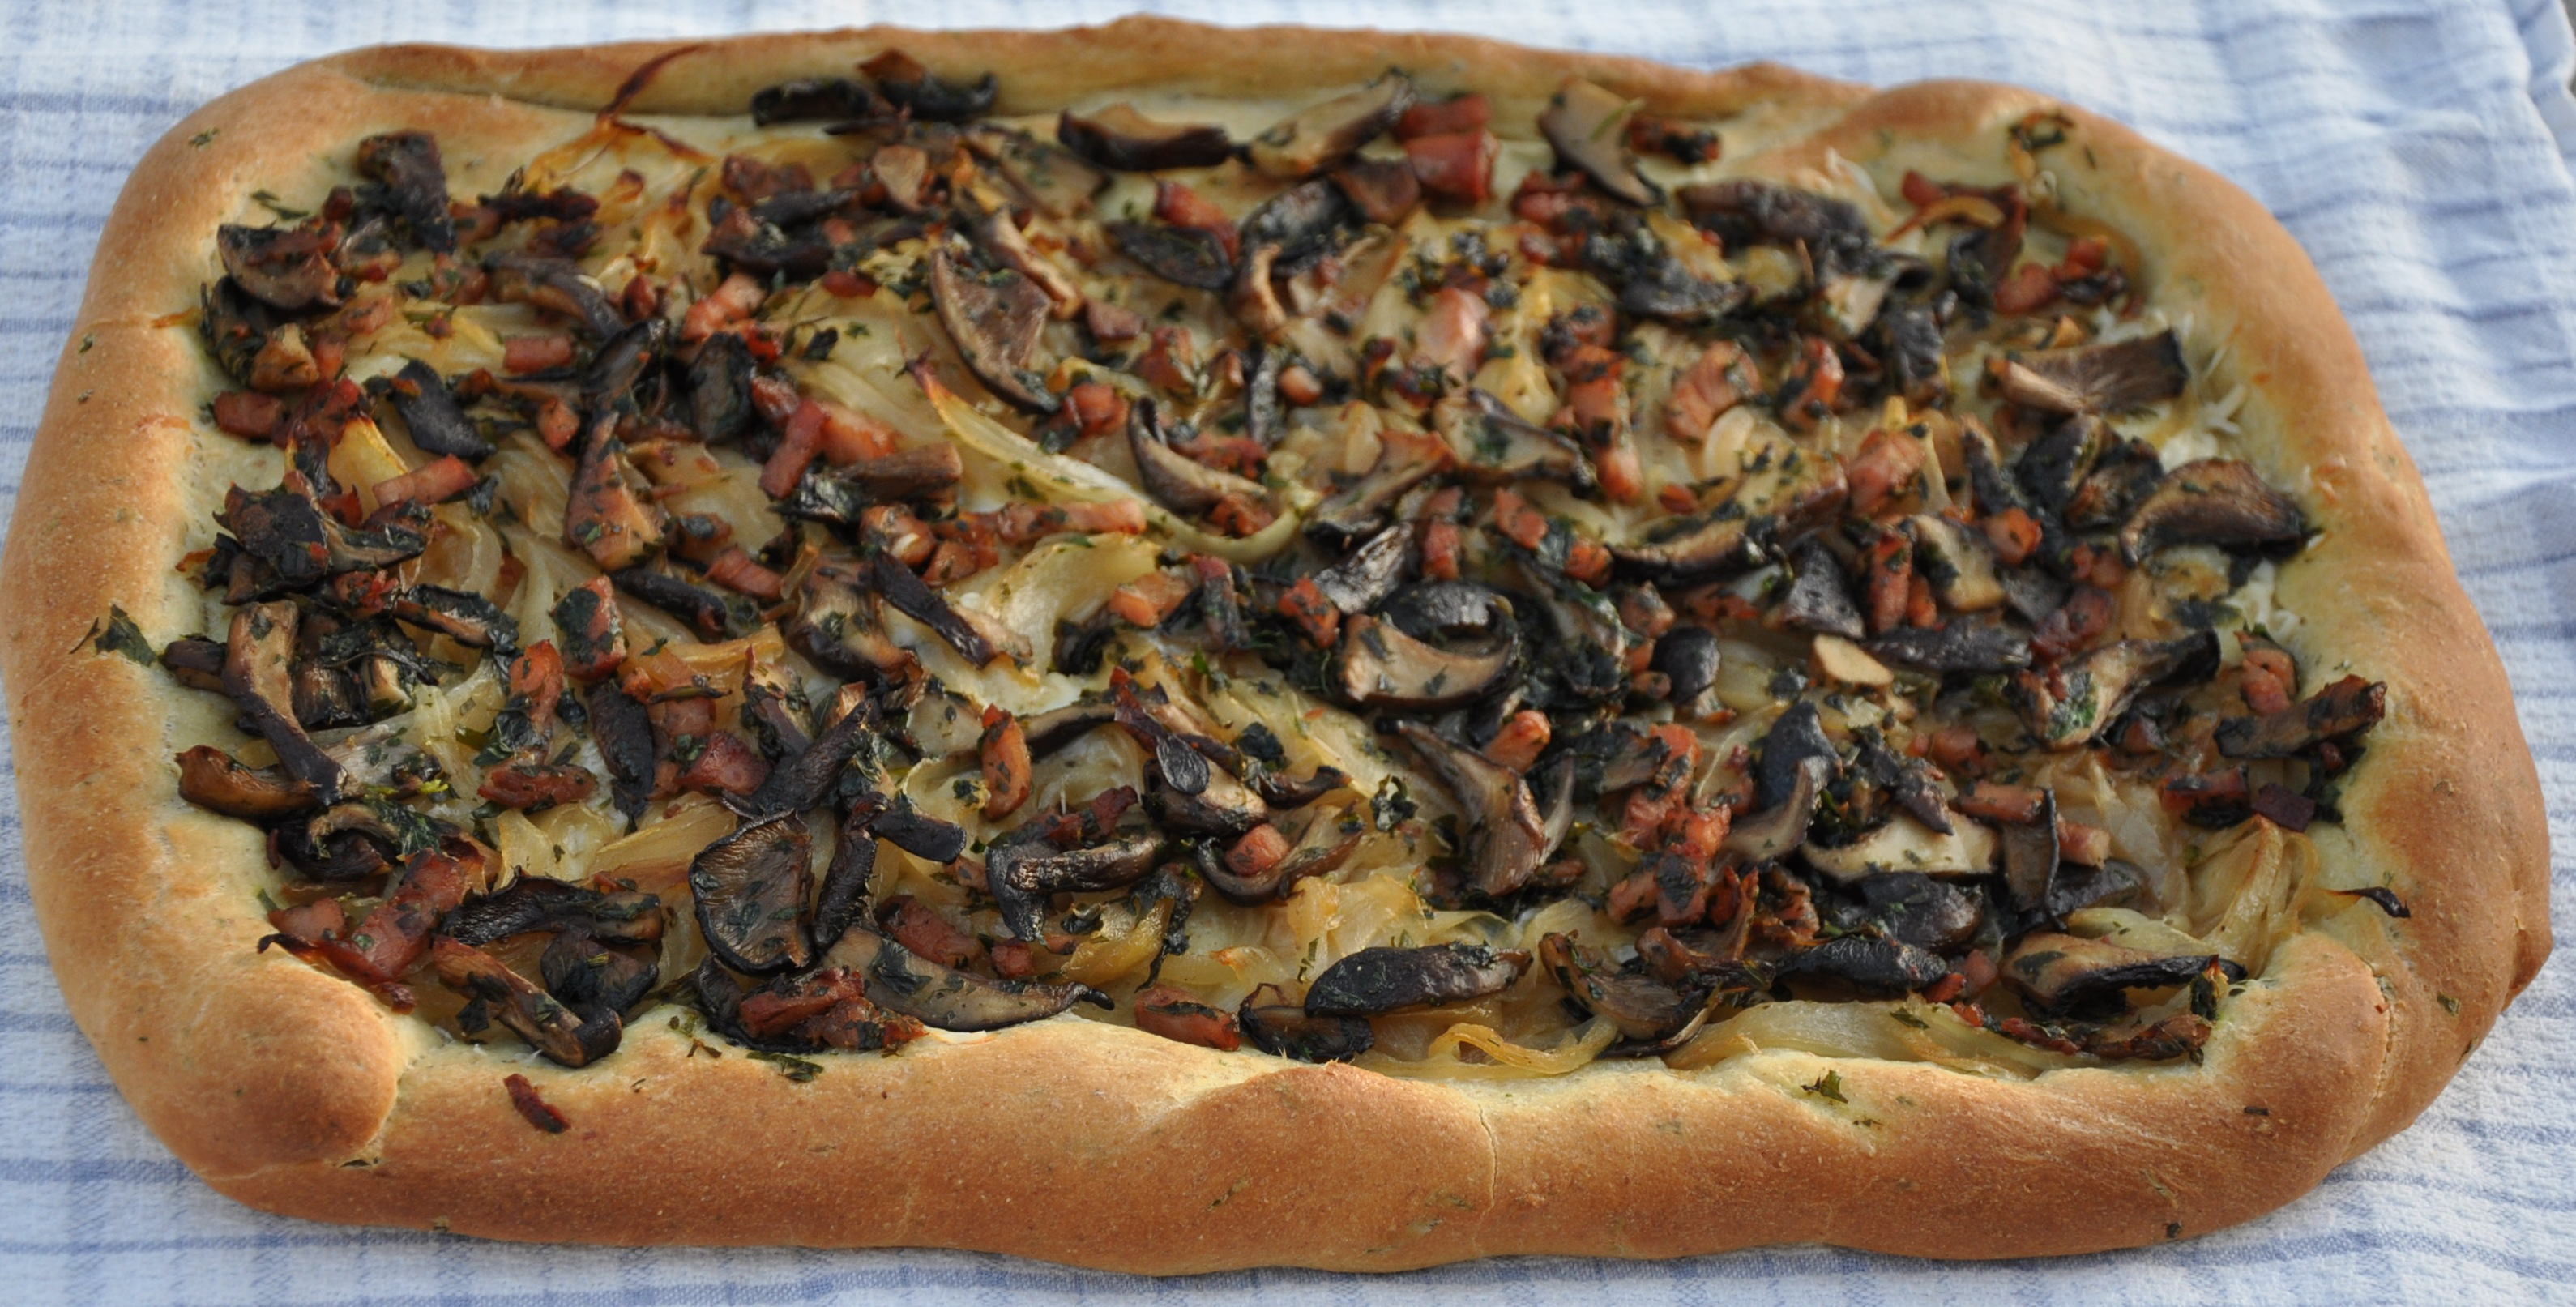 Pissaladière with Oyster Mushrooms and Black Forest Ham